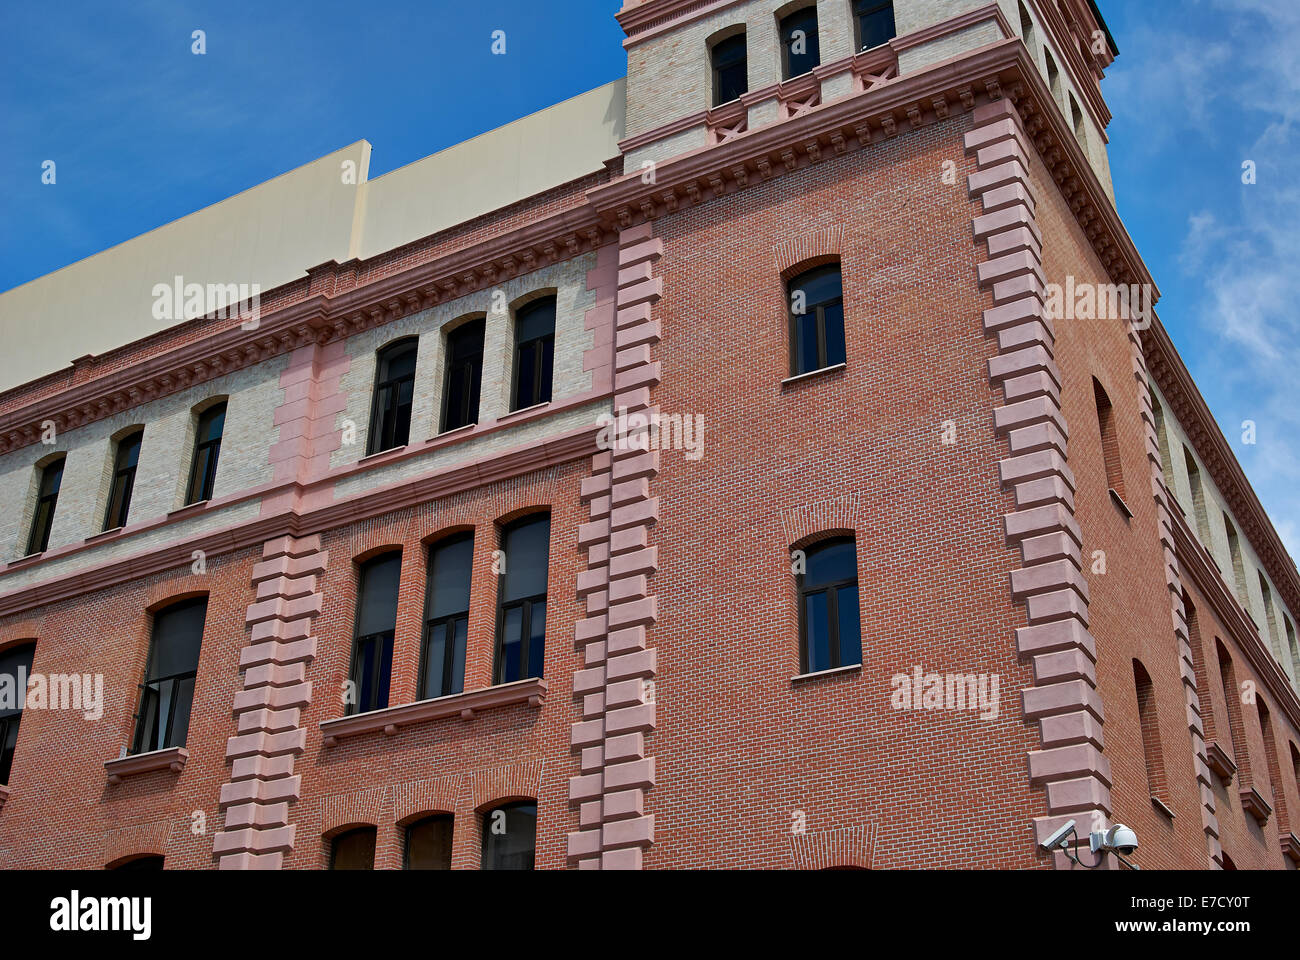 buildings with lace fronts of city Madrid Stock Photo